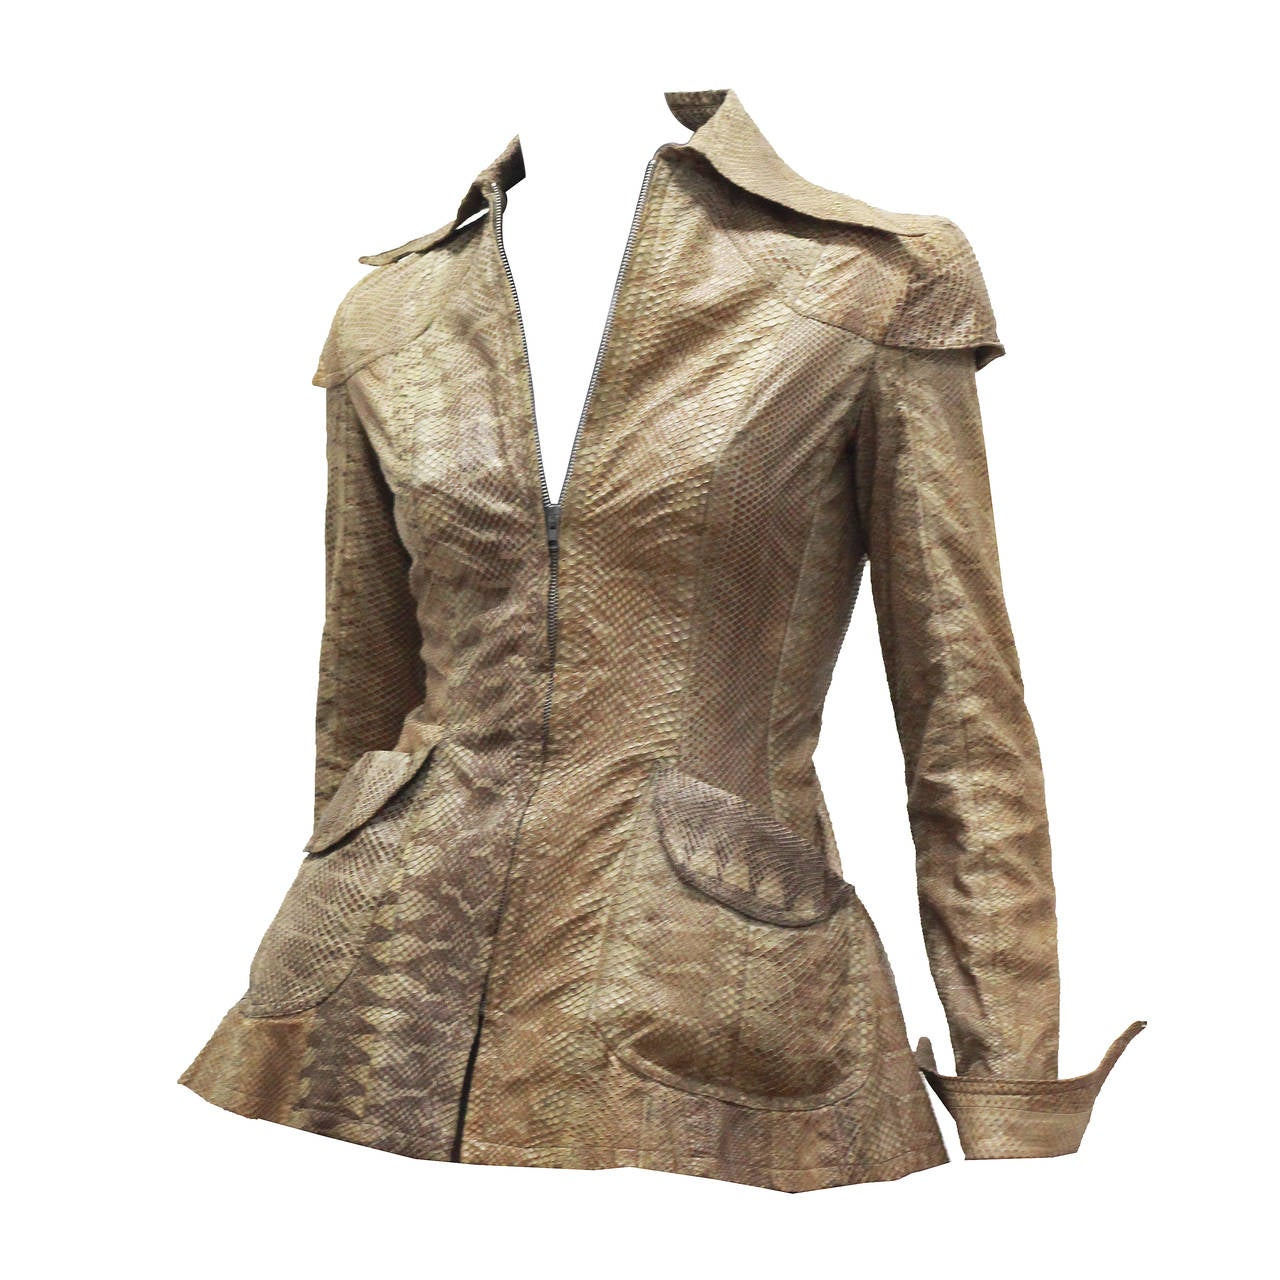 Early and rare Ossie Clark Snakeskin Jacket c. 1966